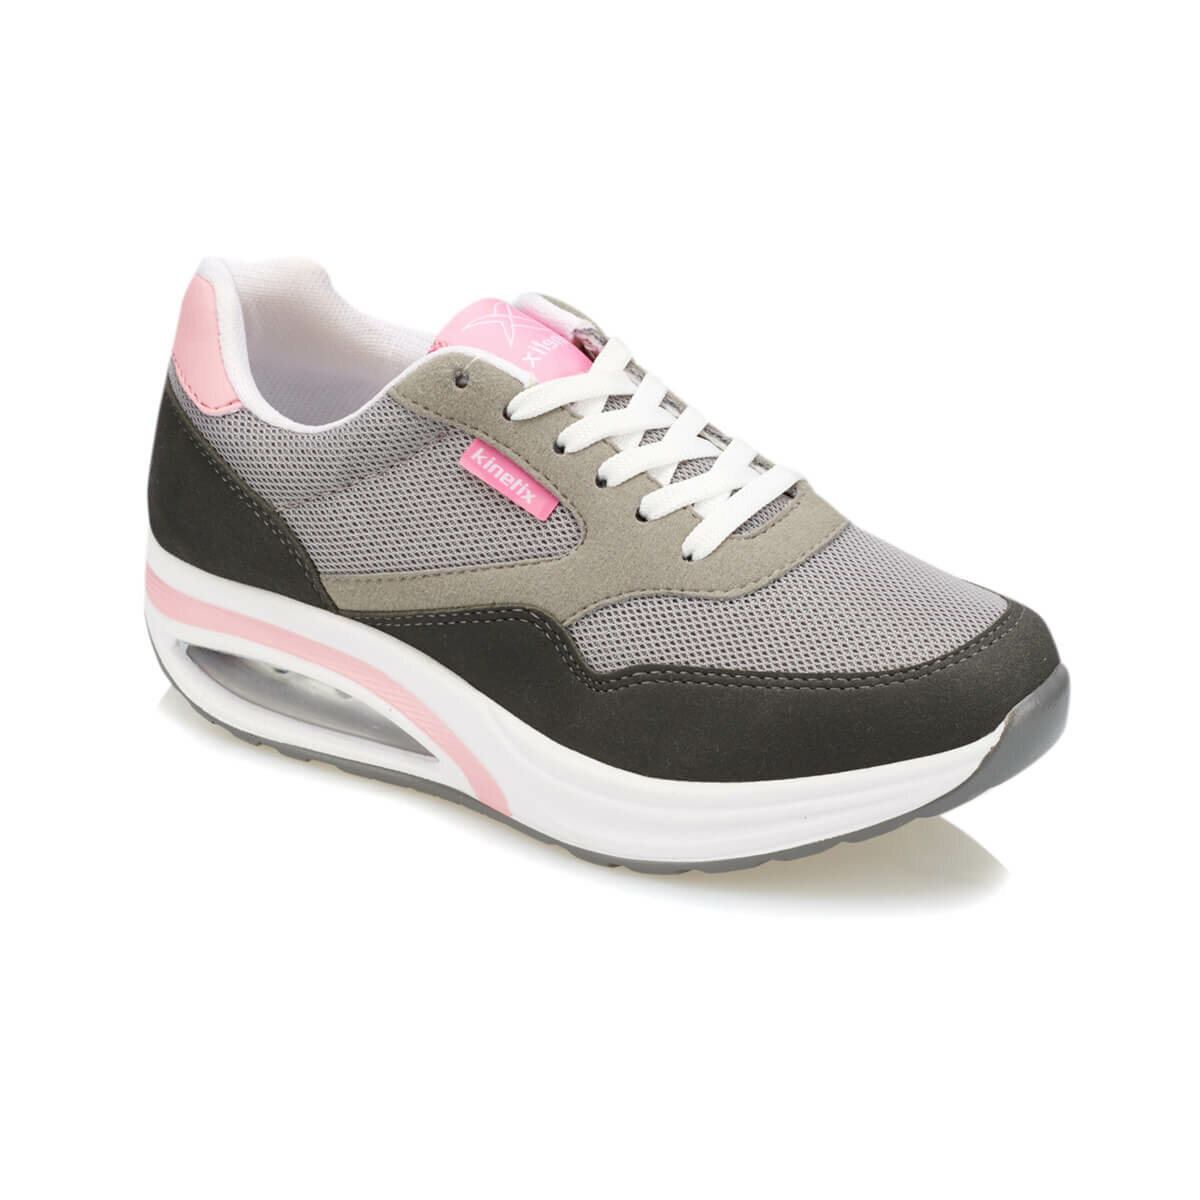 FLO ANETA Dark Gray Women 'S Sneaker Shoes KINETIX